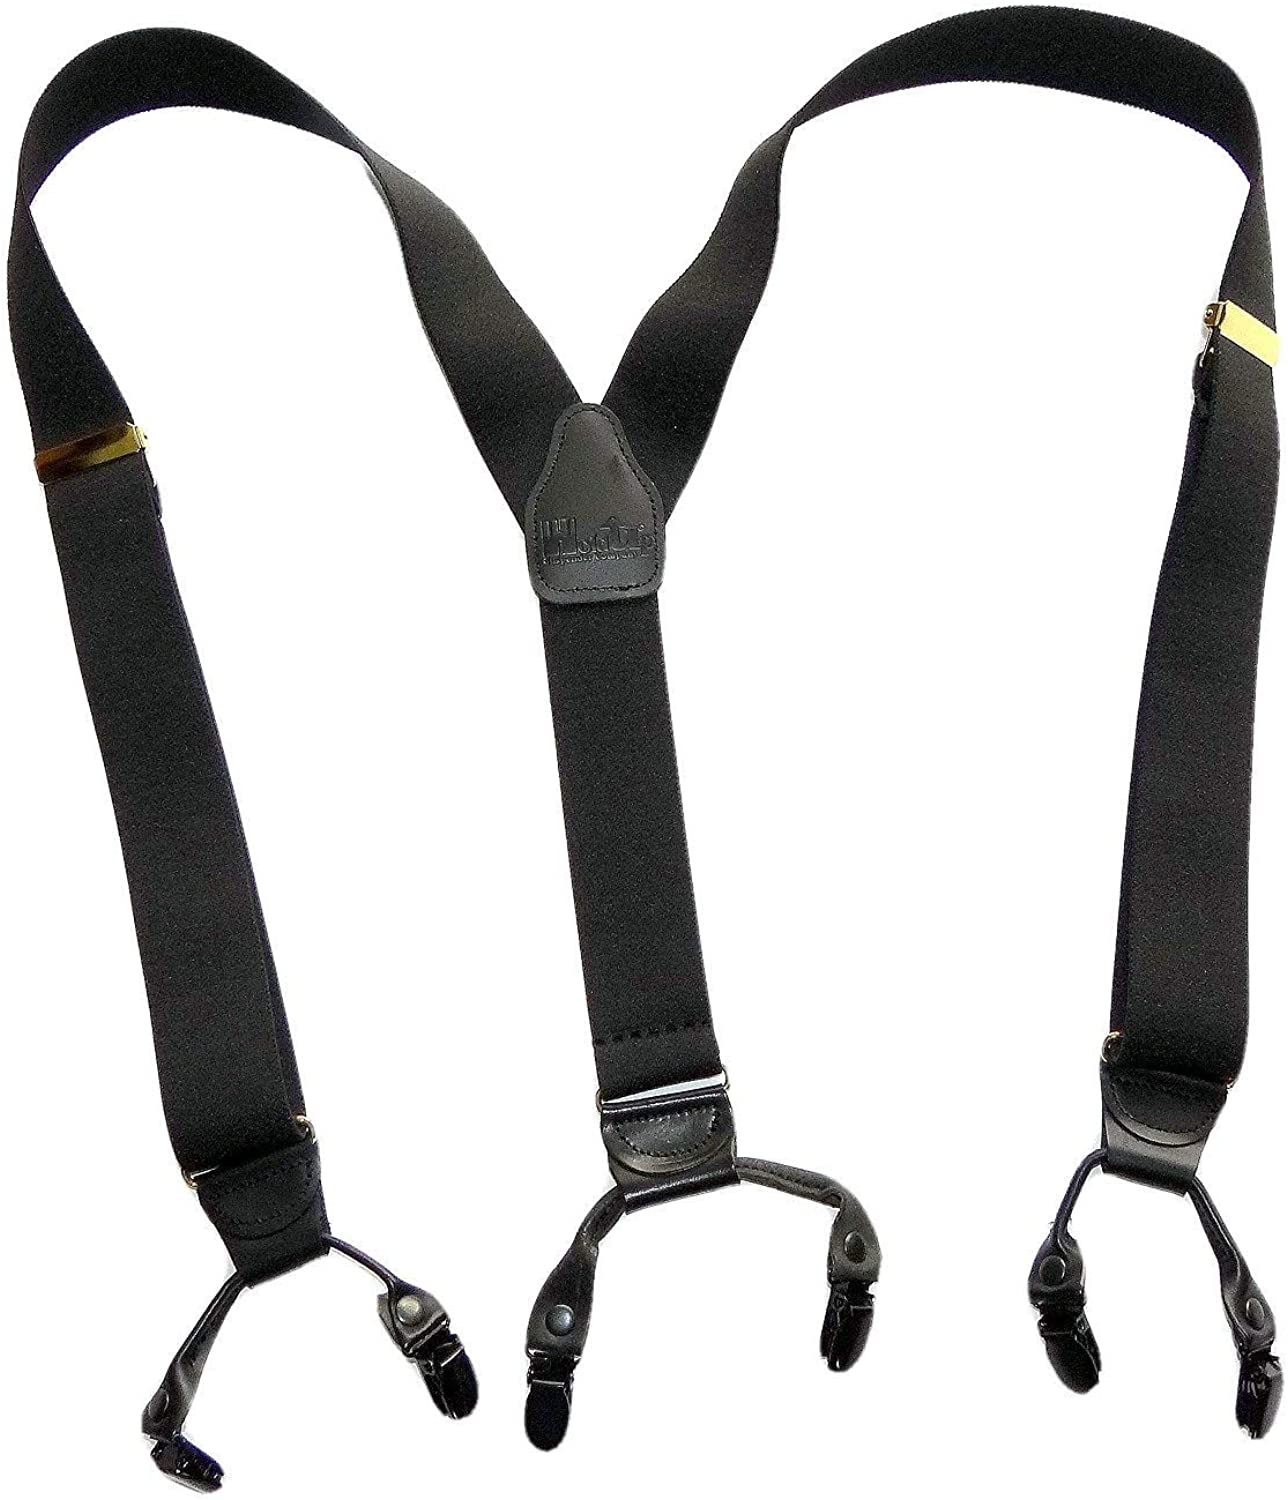 HoldUp Brand XL Casual Series Black Pack color Double-Up Style Suspenders with black No-slip Clips